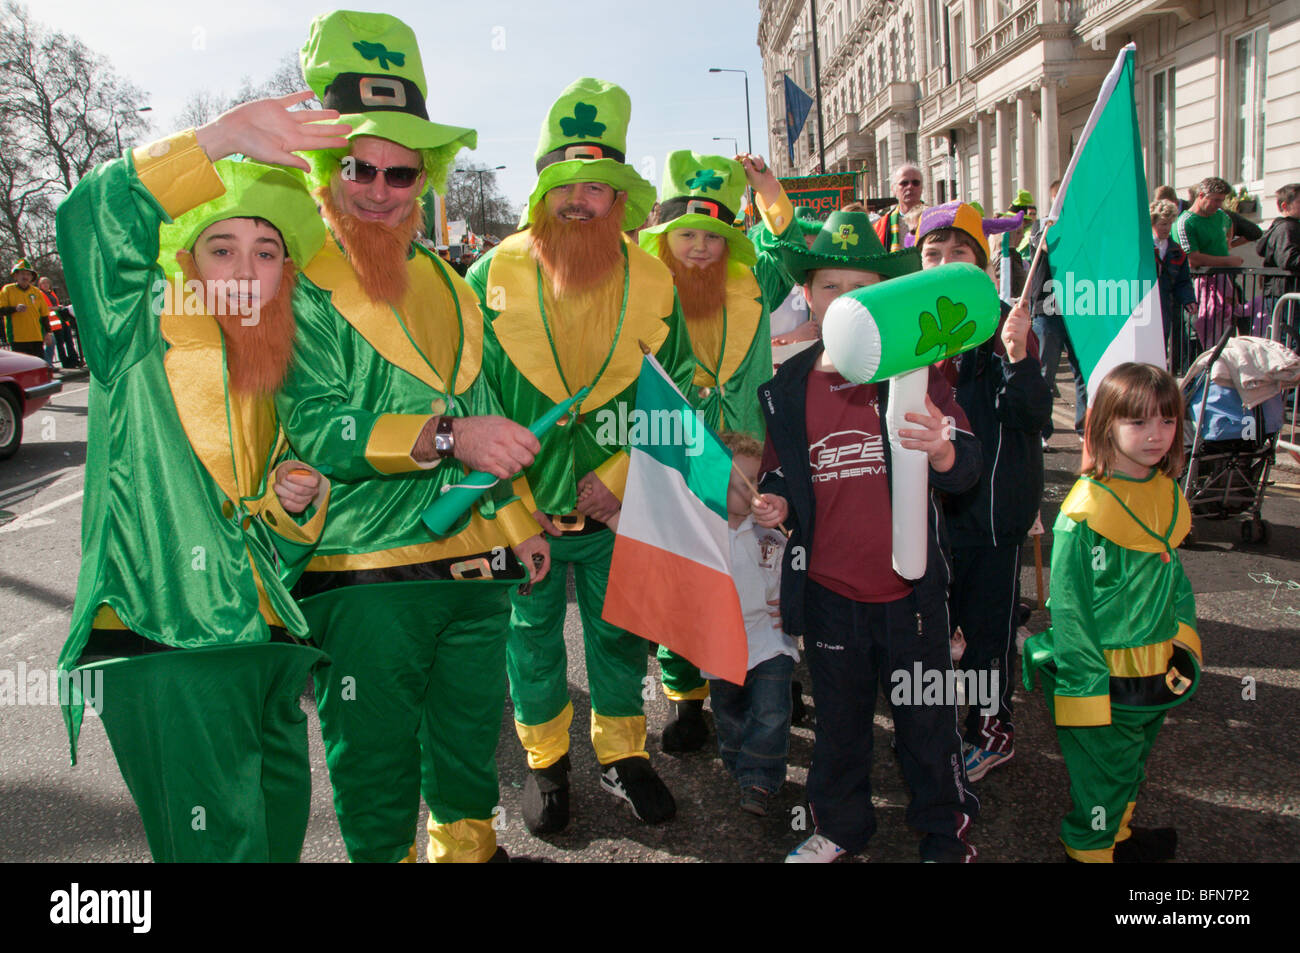 People in green costumes with Irish flag and shamrock hats  sc 1 st  Alamy & London St Patricku0027s Day Parade. People in green costumes with Irish ...